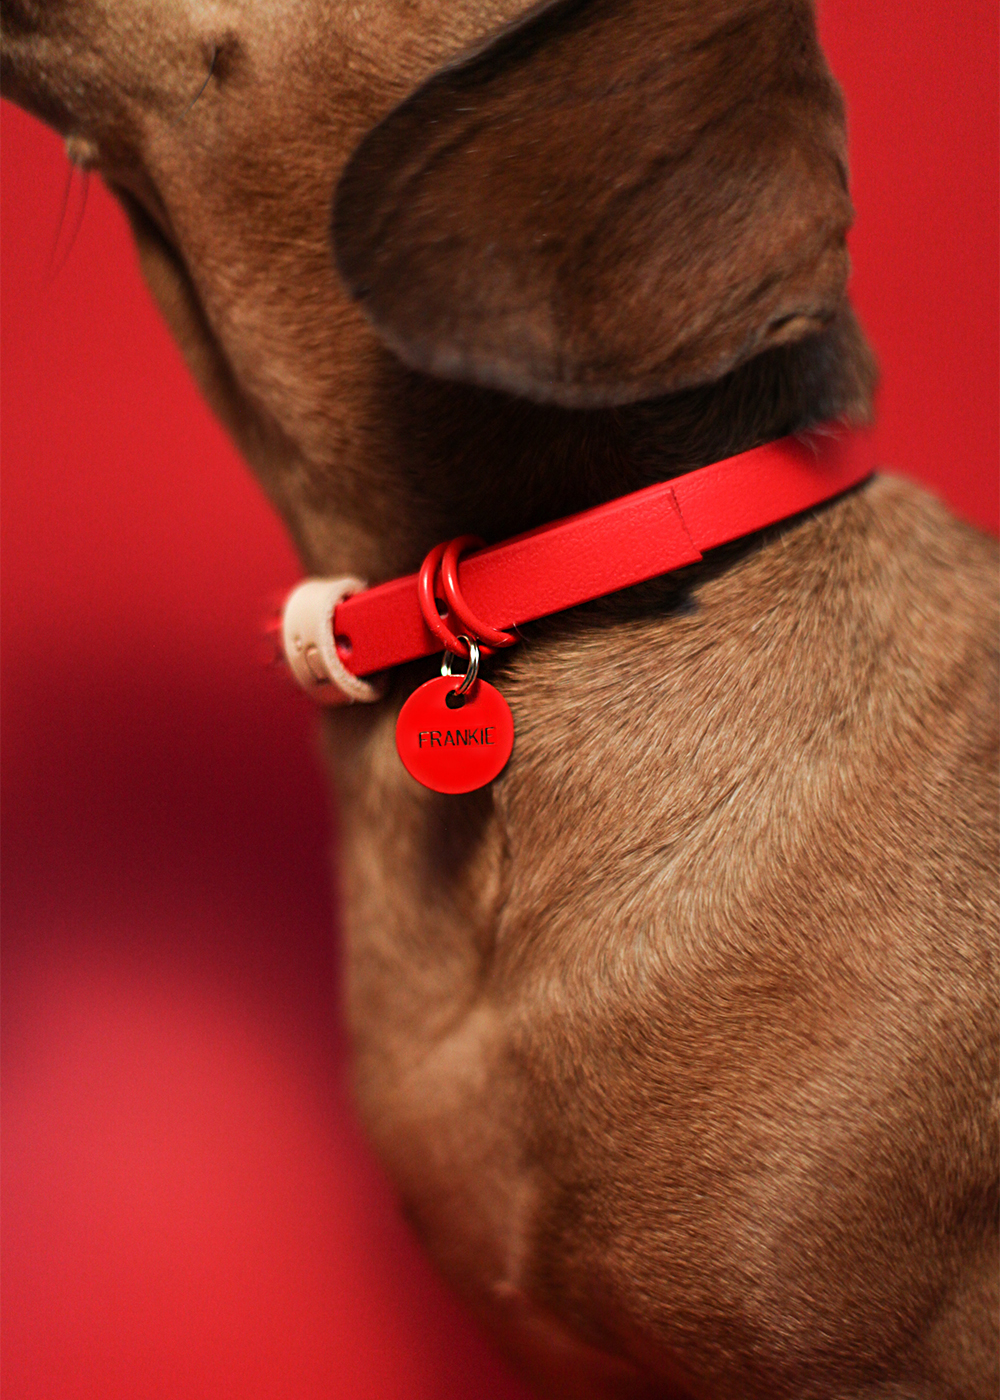 Frankie wearing the red biothane collar and custom ID tag